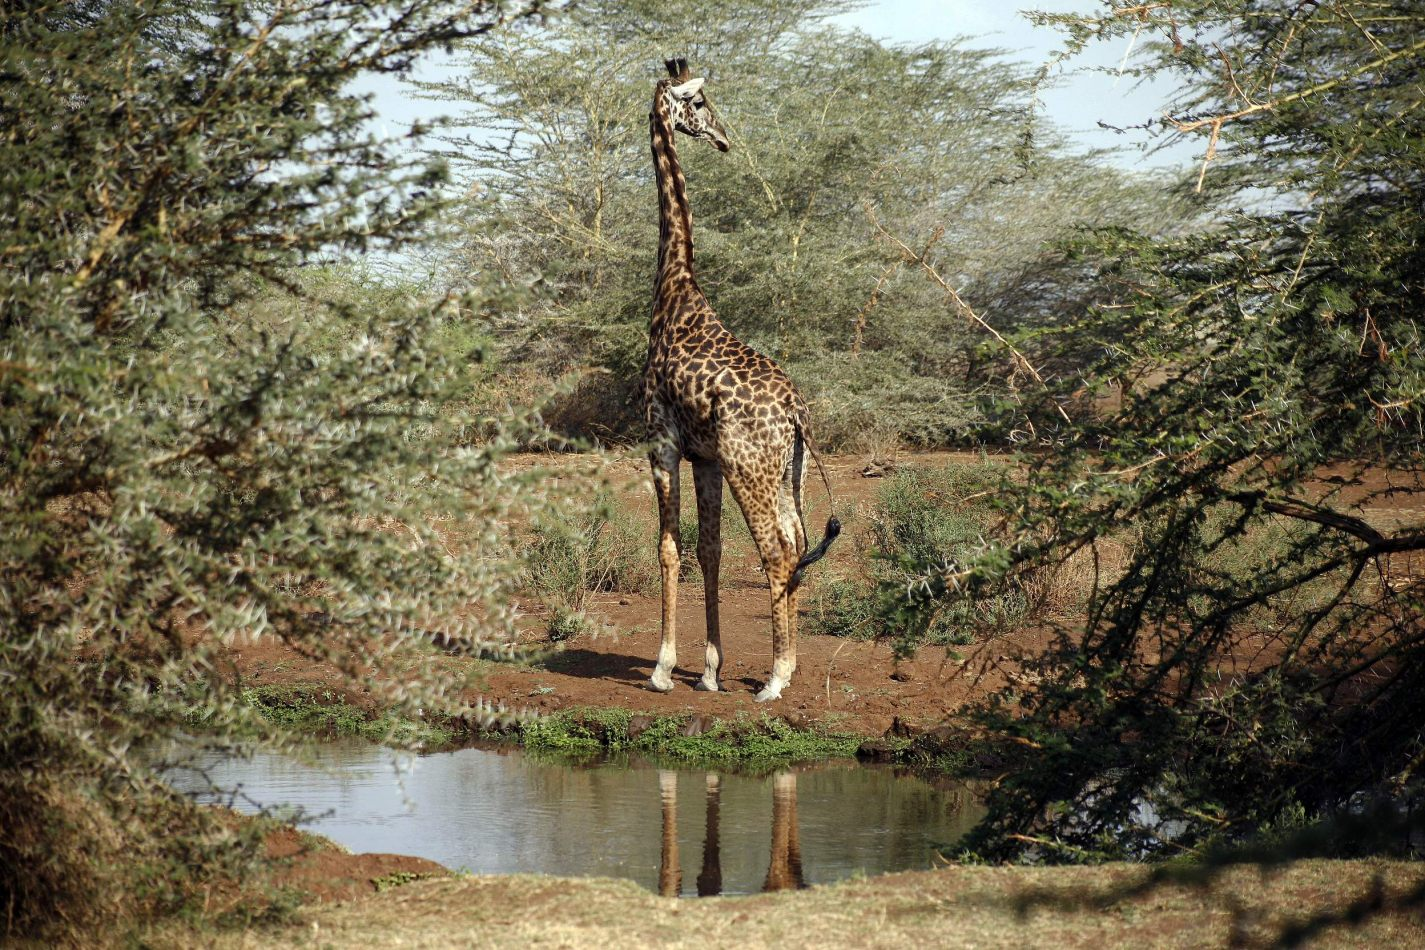 Anthony Ellis Photography: Mzungu - Giraffe